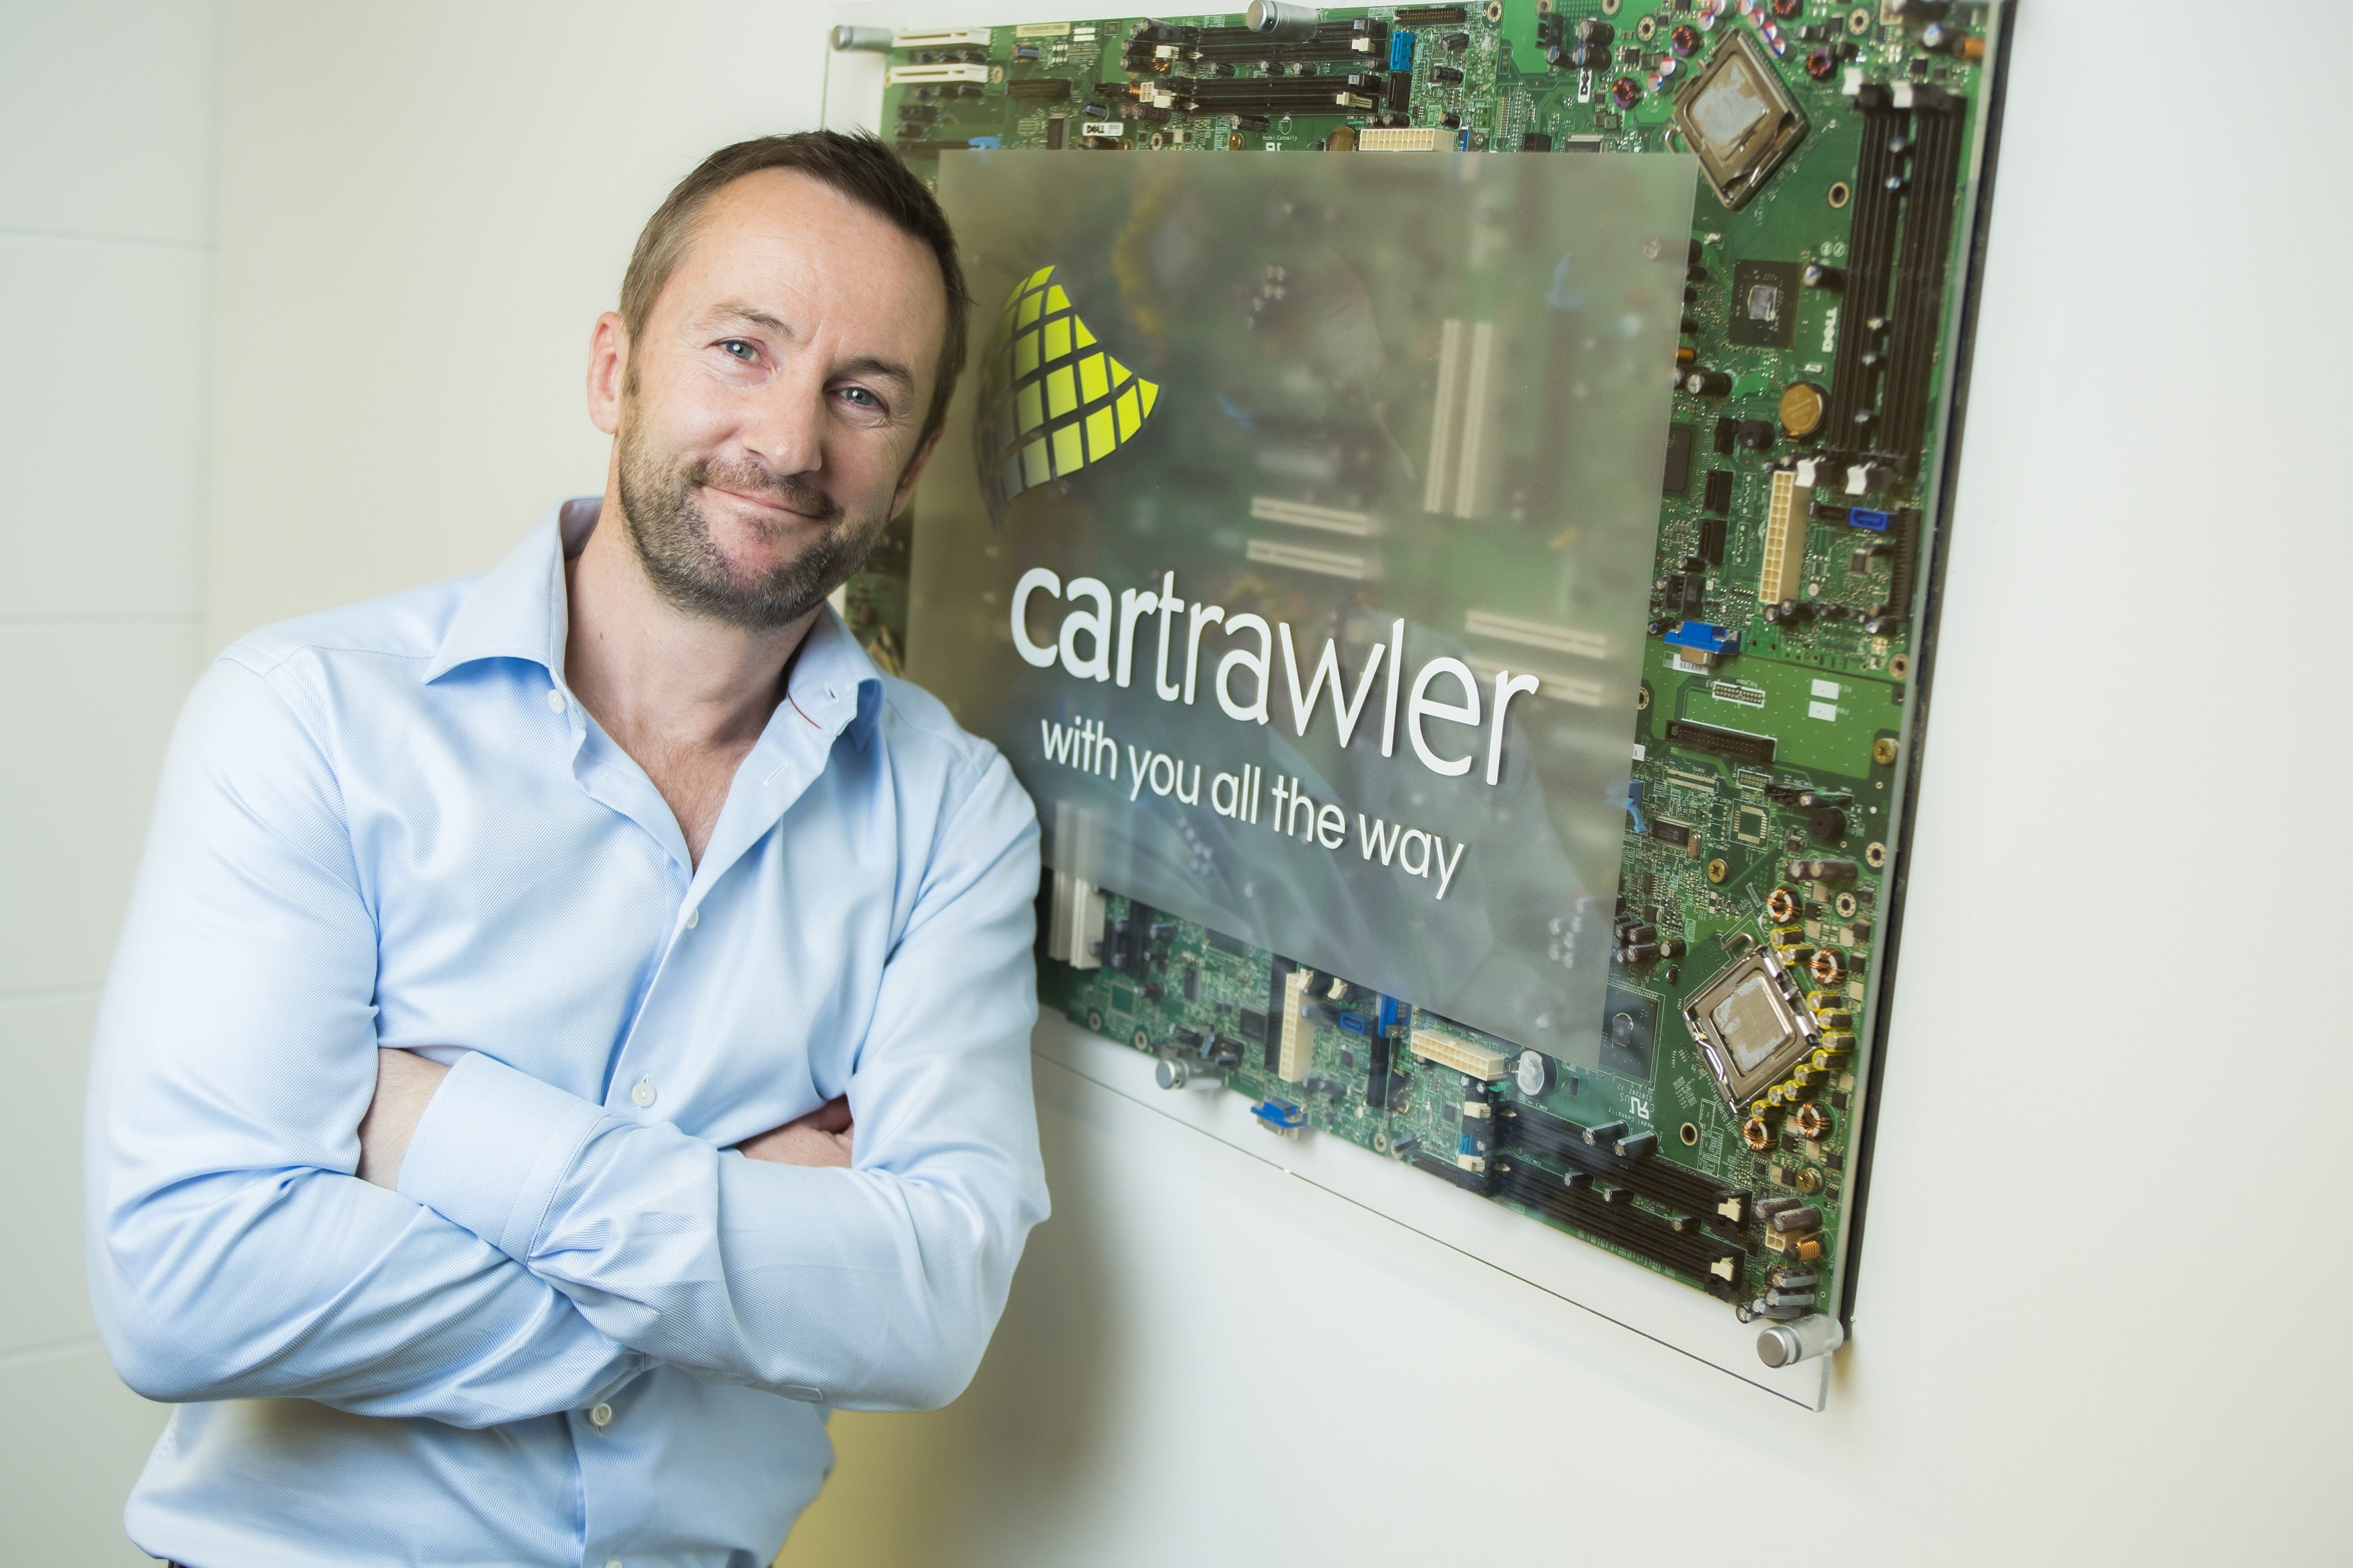 Focus on innovation makes CarTrawler a world leader